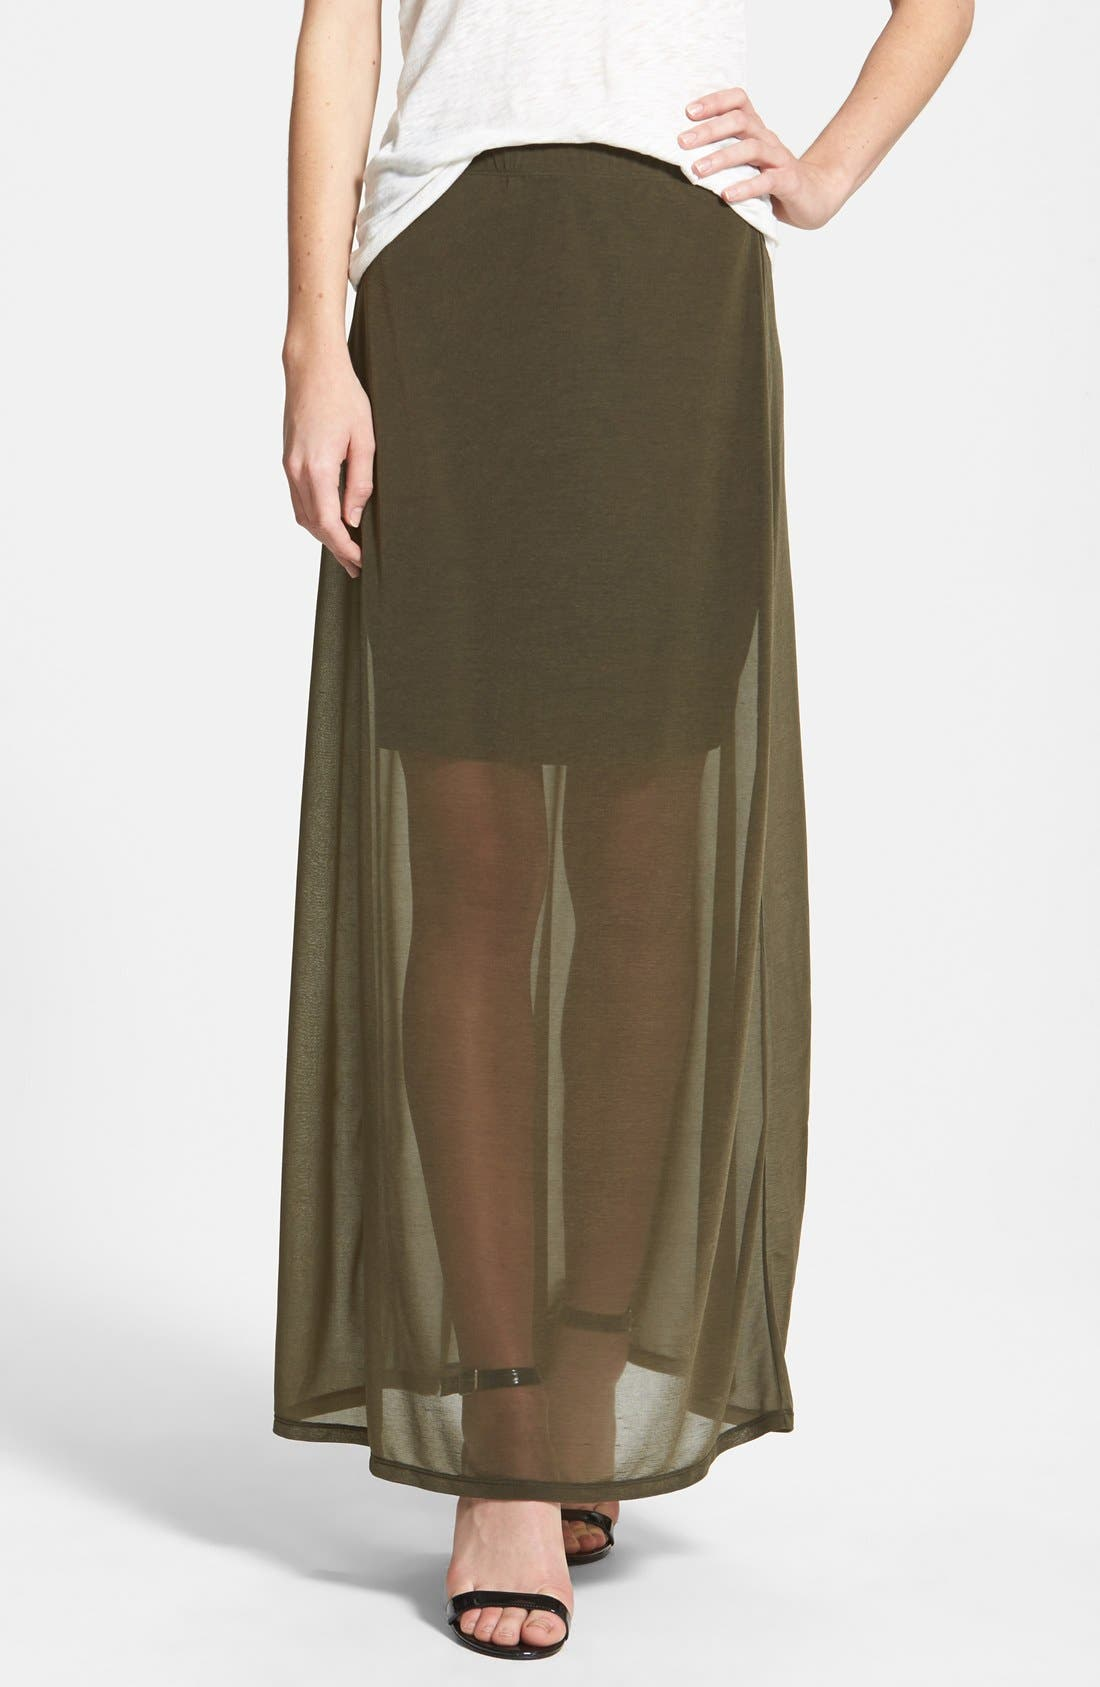 Alternate Image 1 Selected - Halogen® Sheer Overlay Maxi Skirt (Regular & Petite)